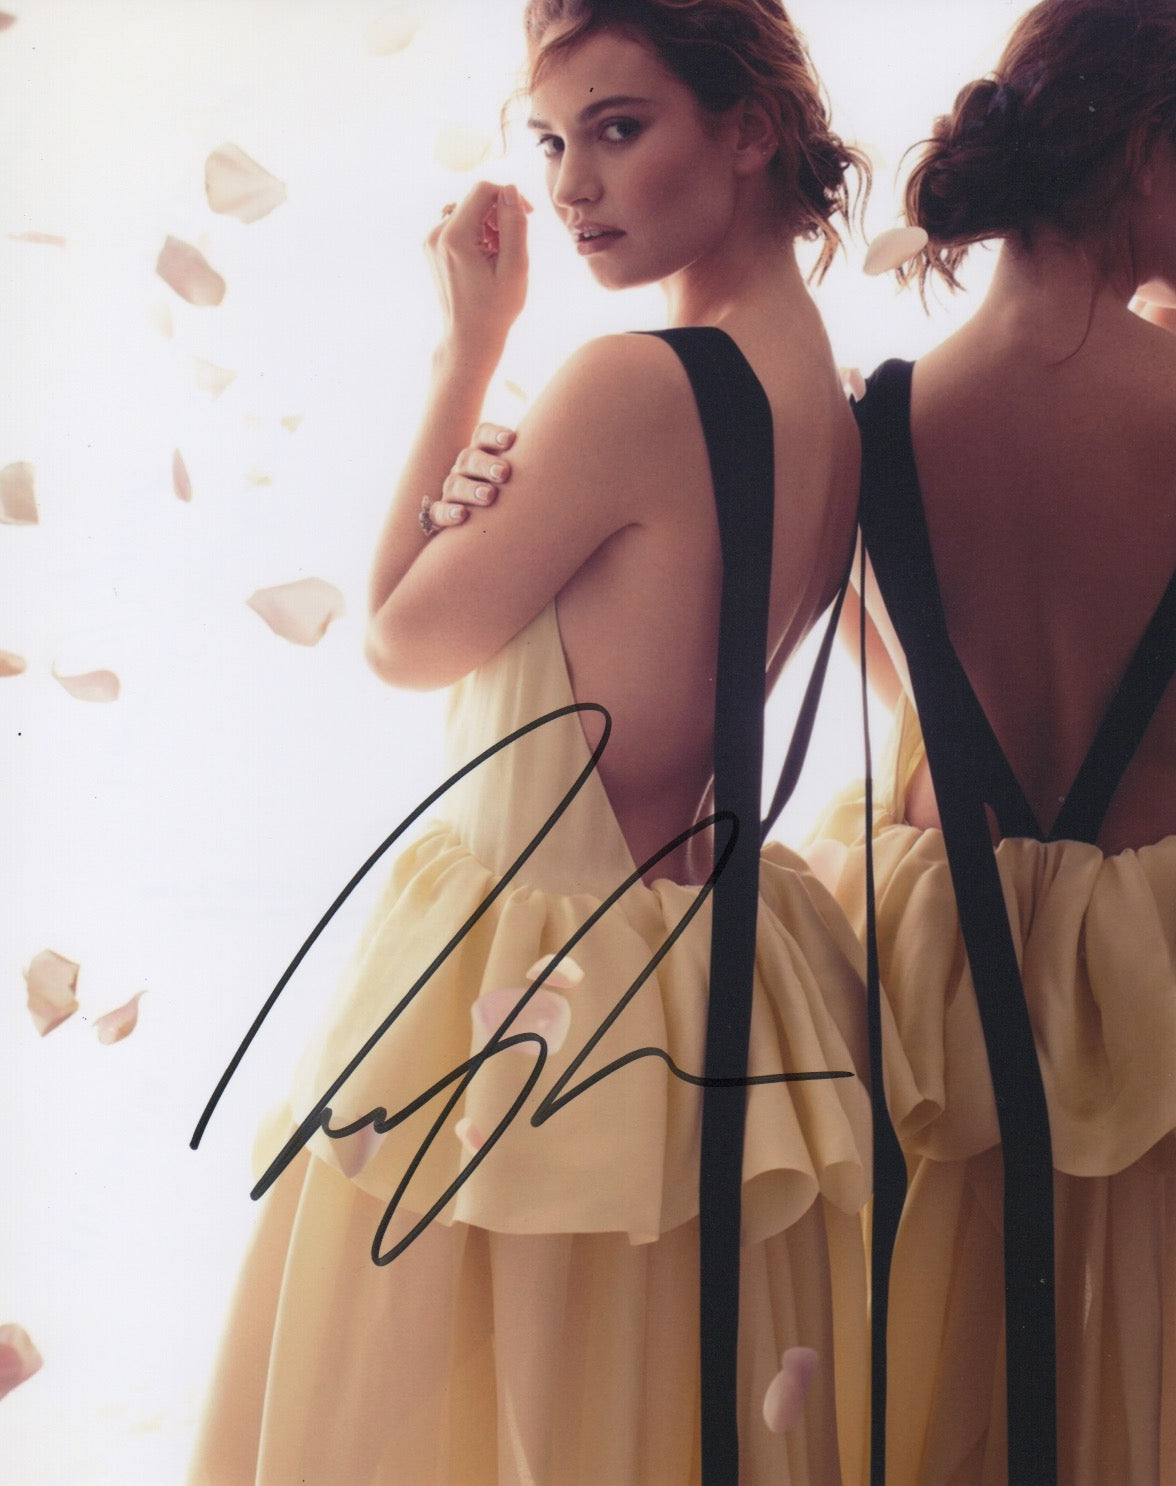 Lily James Sexy Signed Autograph 8x10 Photo #3 - Outlaw Hobbies Authentic Autographs